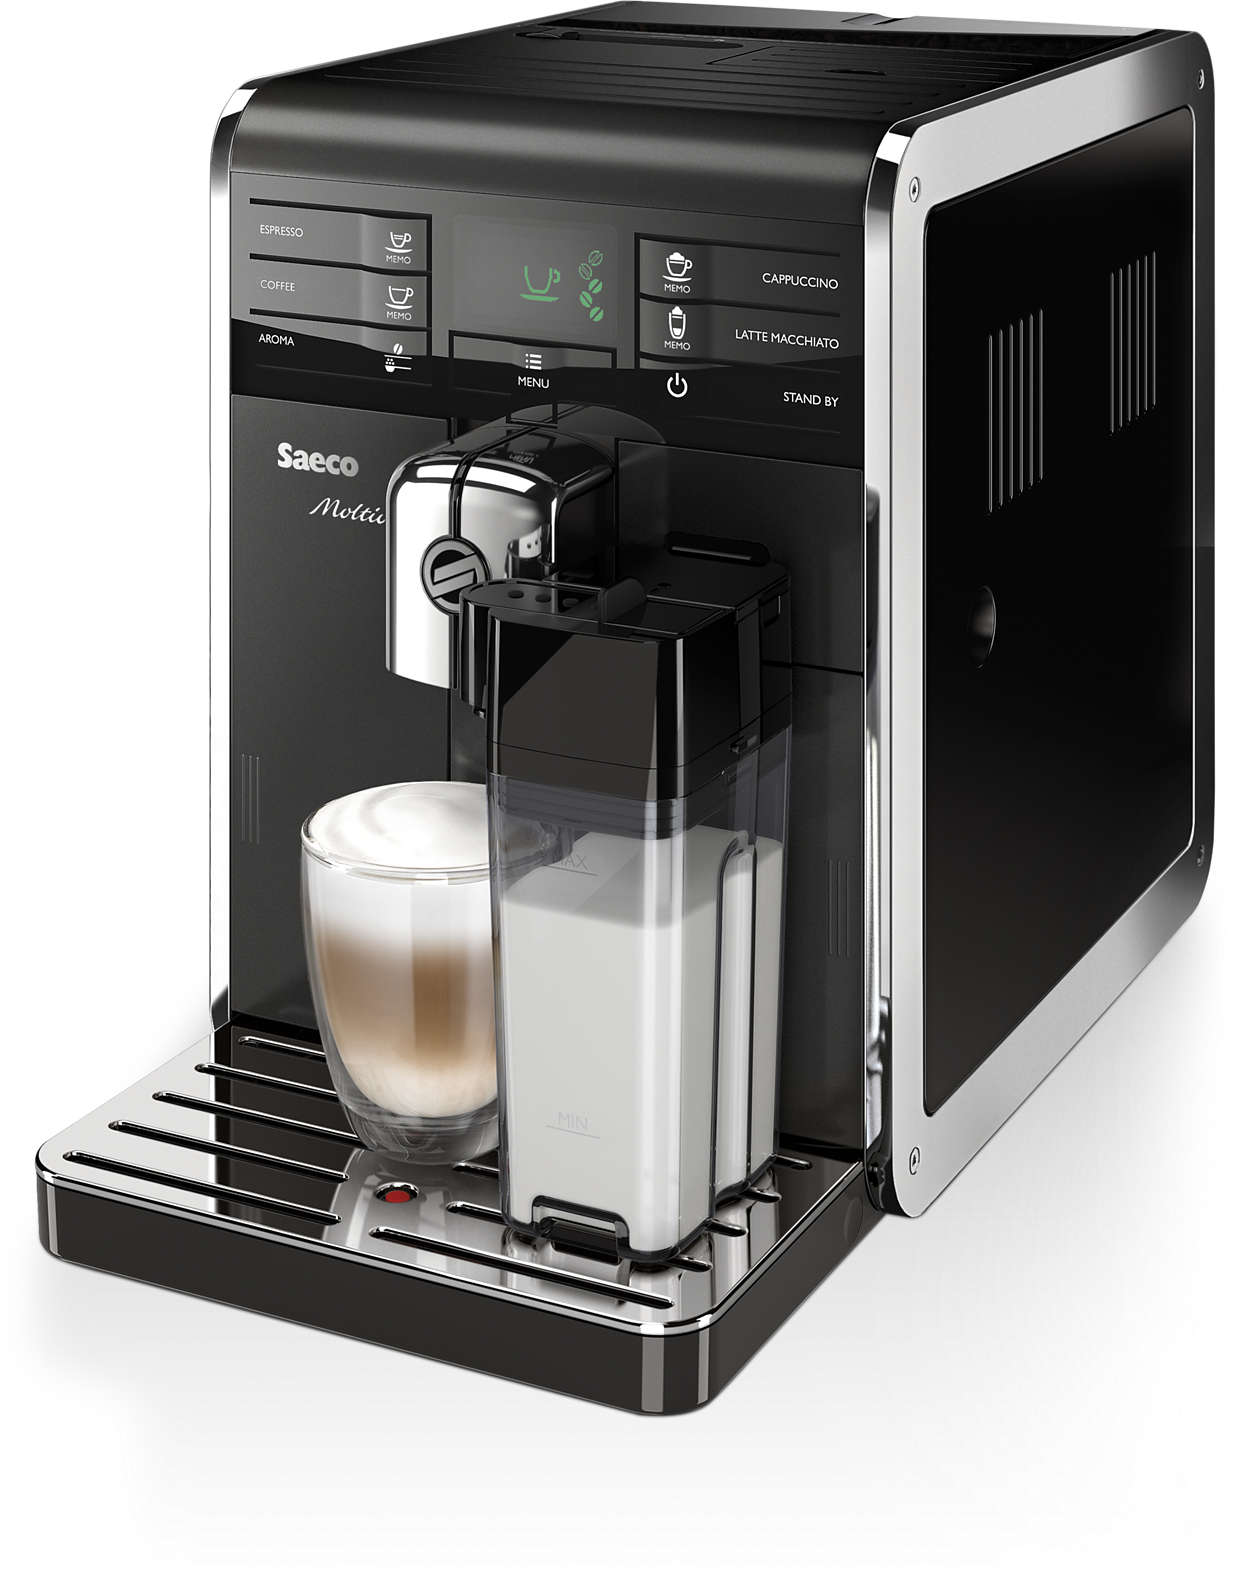 moltio super automatic espresso machine hd8869 47 saeco. Black Bedroom Furniture Sets. Home Design Ideas